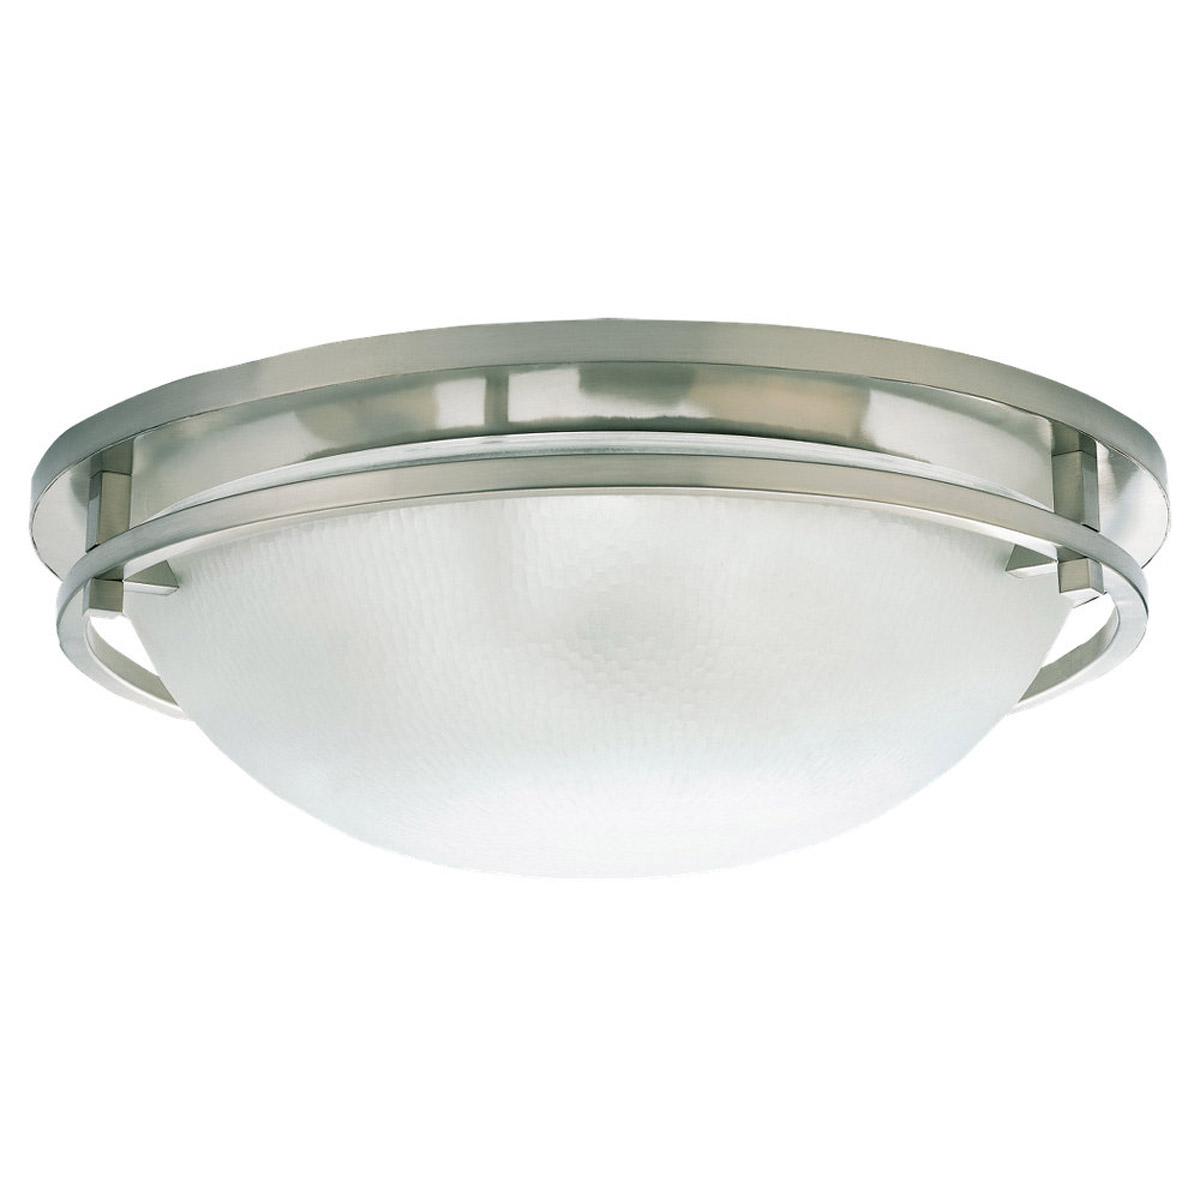 Sea Gull Lighting Eternity 3 Light Flush Mount in Brushed Nickel 75115-962